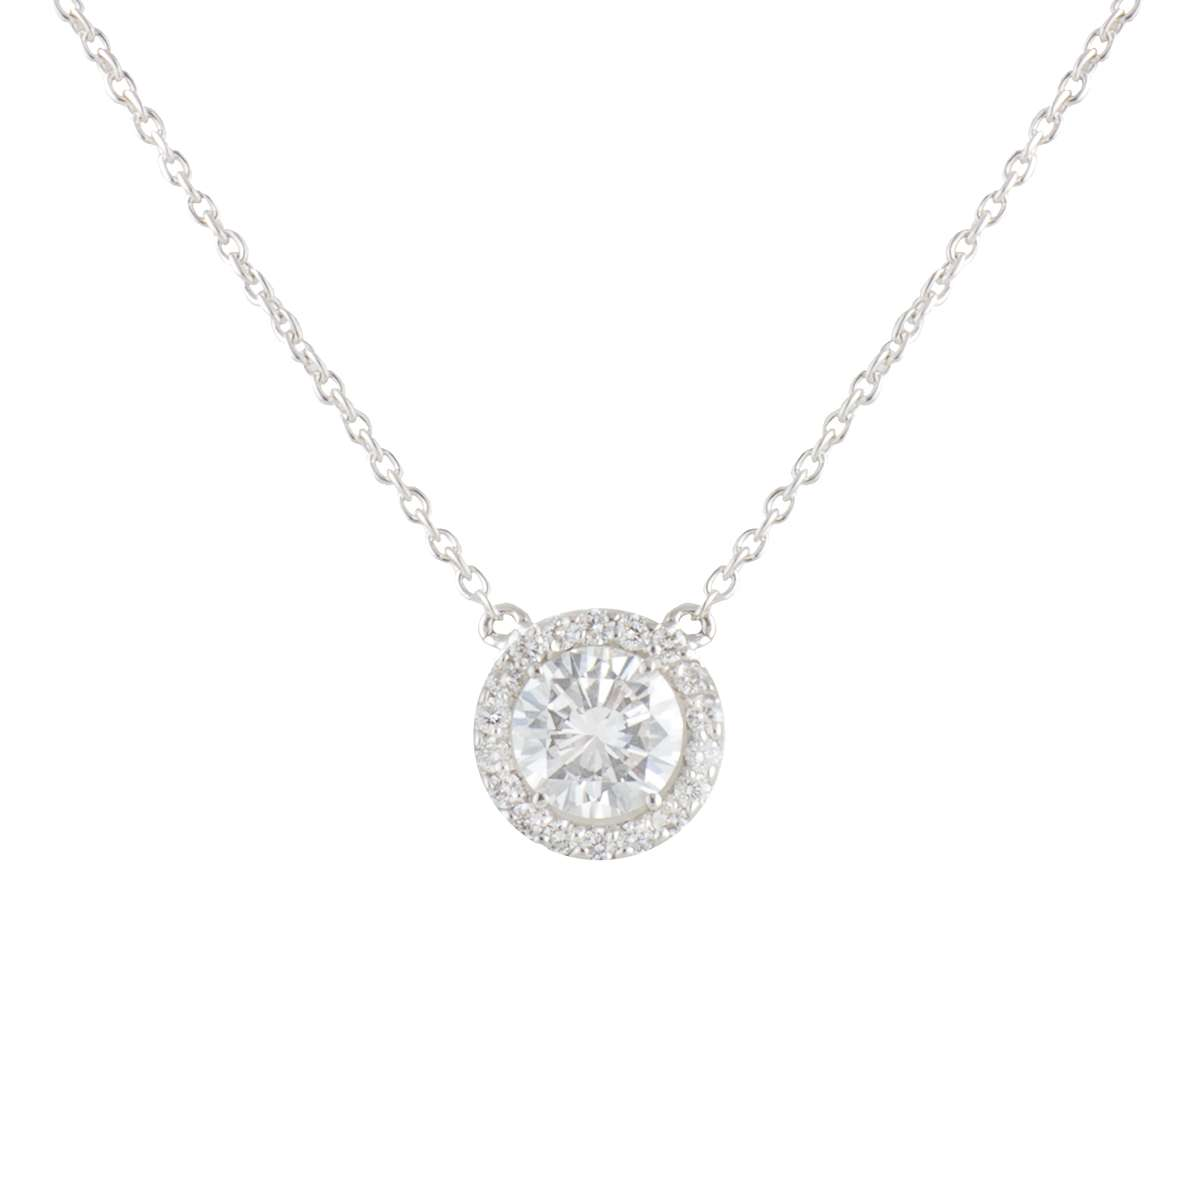 White Gold Diamond Pendant 0.82ct G/VS